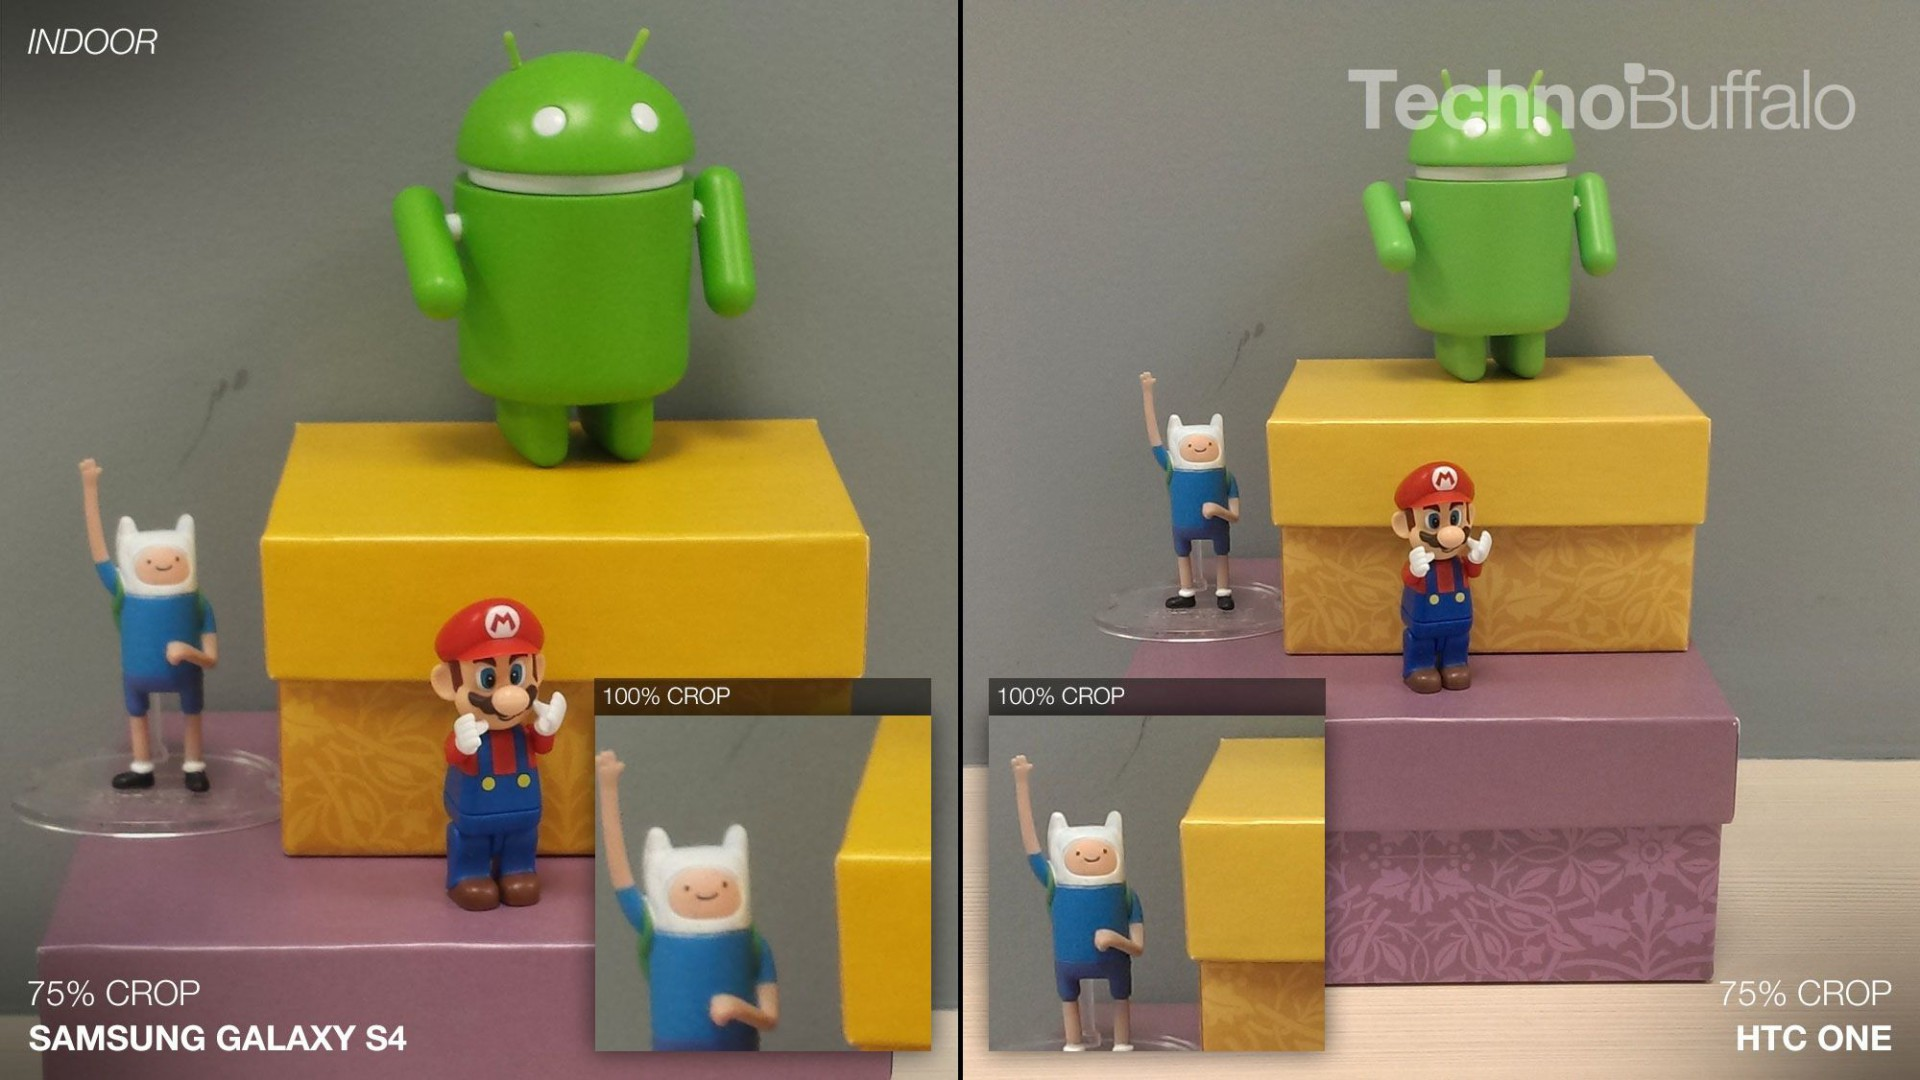 Samsung-Galaxy-S4-vs-HTC-One-Camera-Comparison-Indoor-Friends